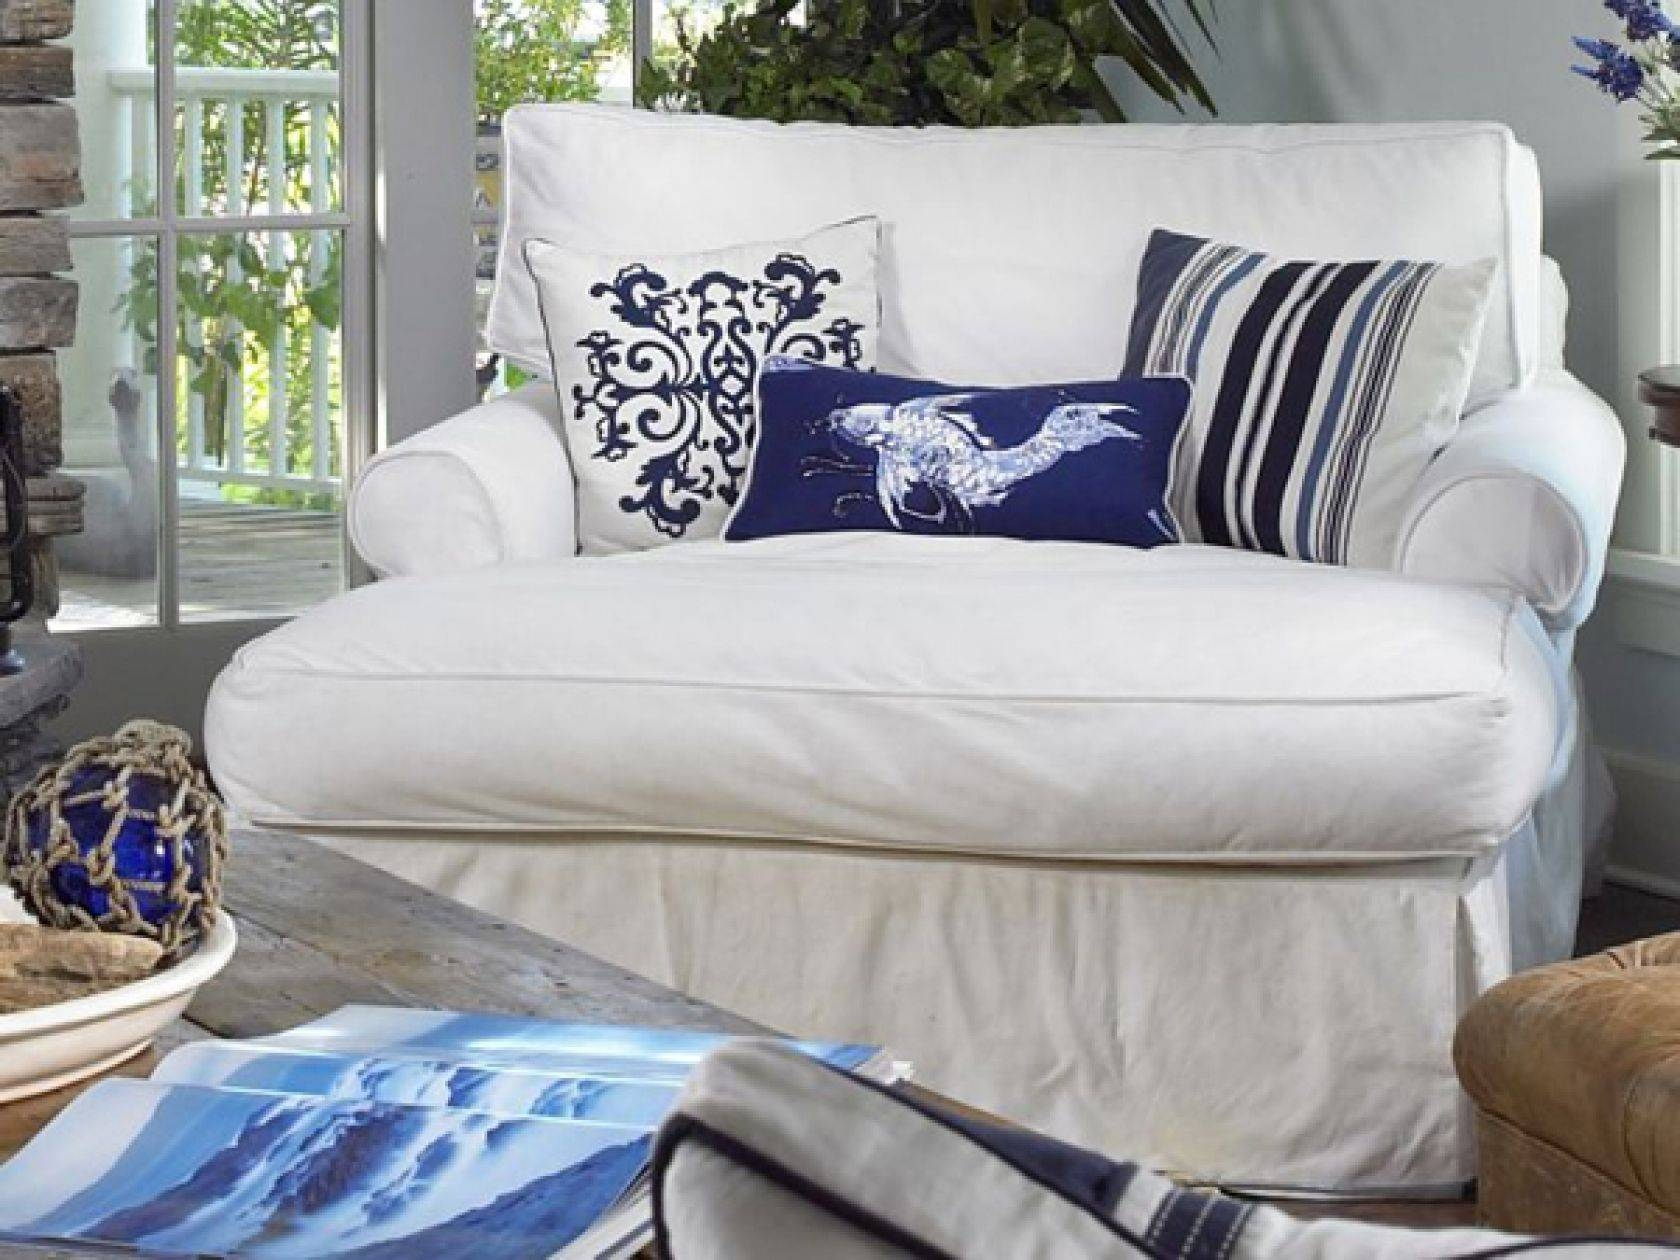 Slipcovered Furniture: Chairs, Sectionals & Sofas In Slipcover Fabrics Pertaining To Slipcovers For Chairs And Sofas (View 13 of 15)